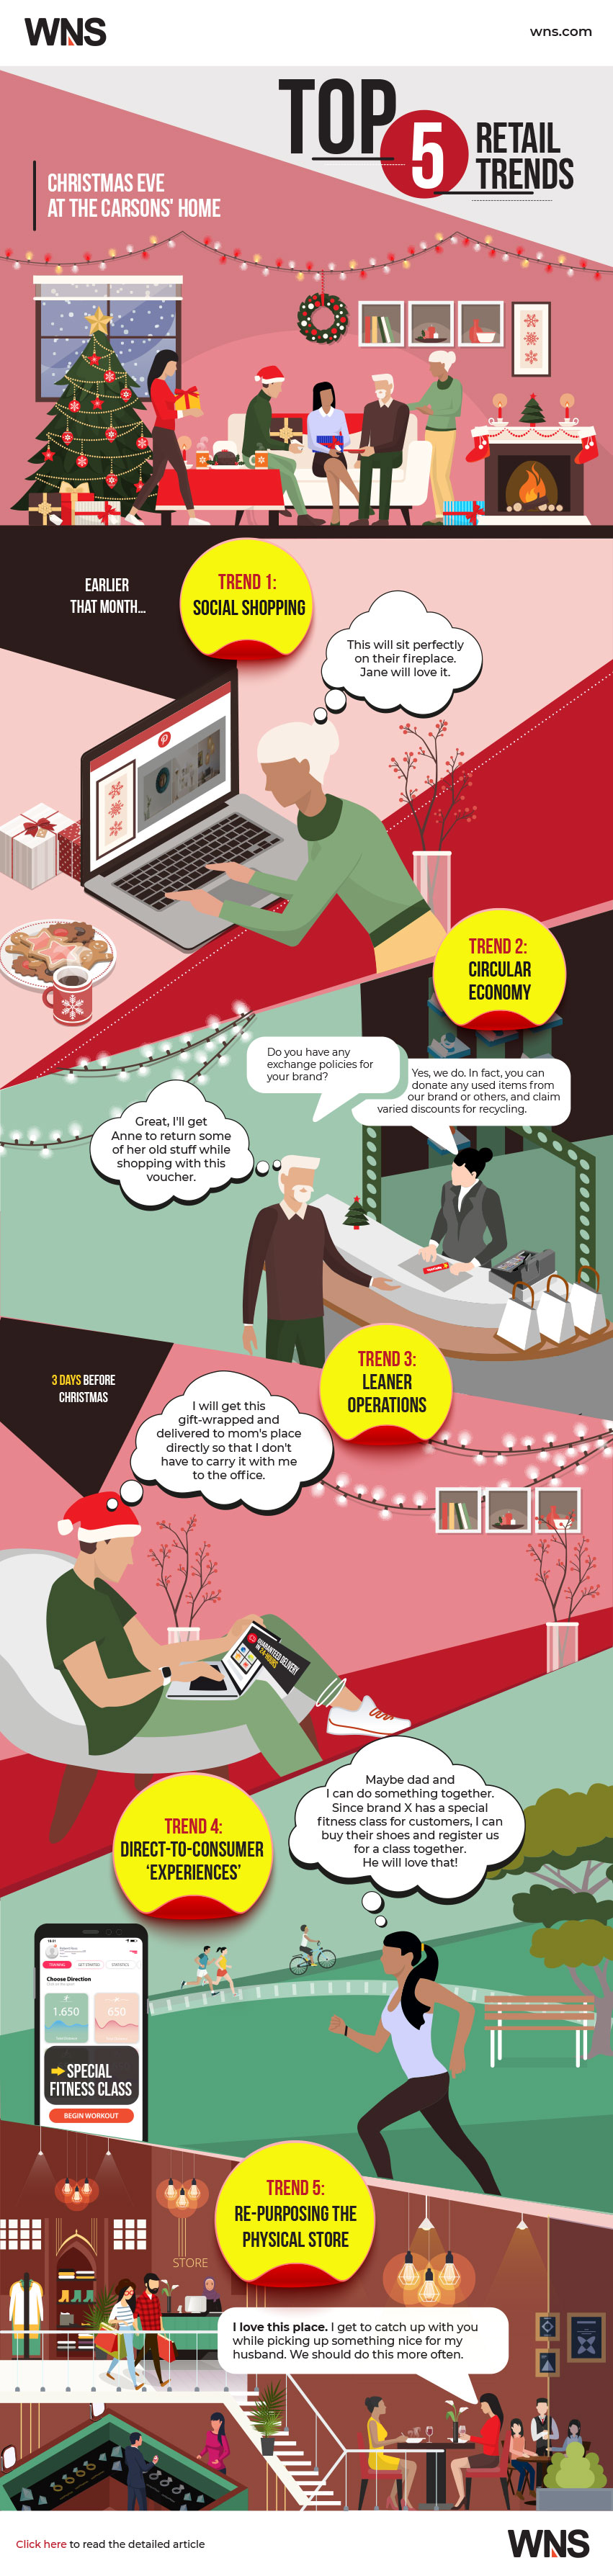 Top 5 Retail Trends Infographic